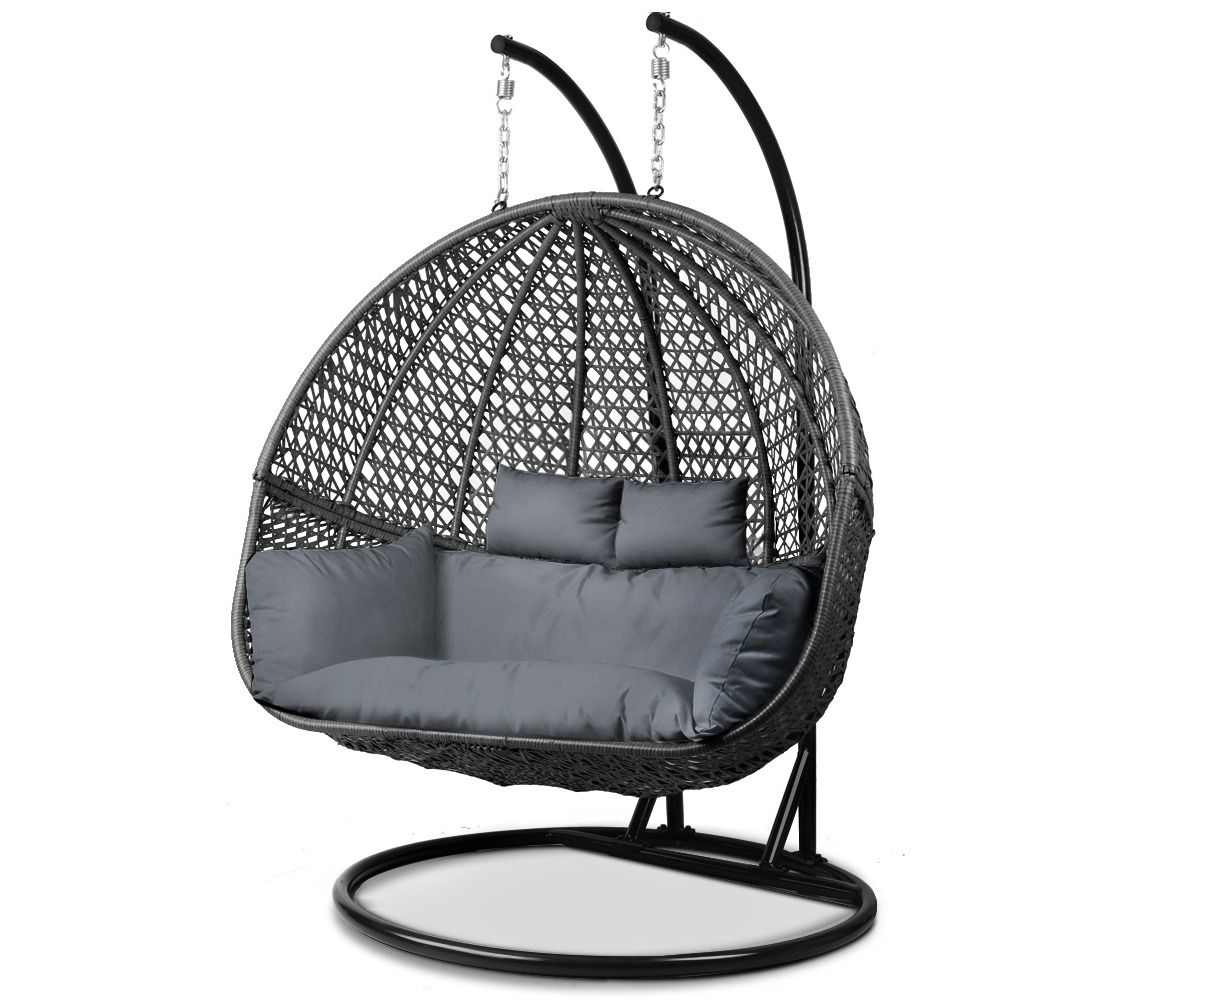 Miraculous Gardeon Stylish Outdoor Furniture Wicker Hanging Swing Egg Caraccident5 Cool Chair Designs And Ideas Caraccident5Info